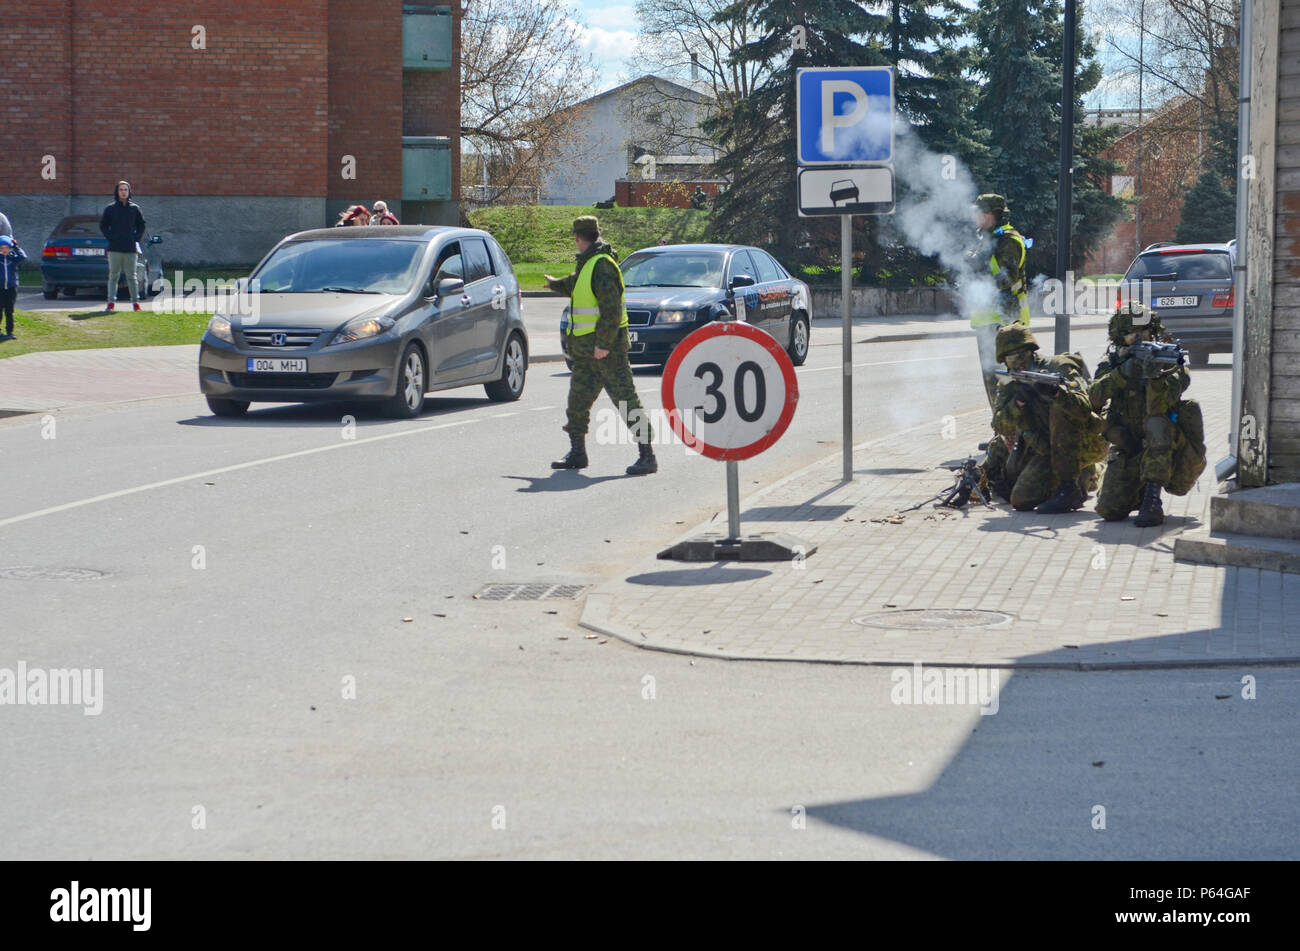 Estonian Soldiers of 2nd Infantry Brigade, Kuperjanov Battalion, suppress enemy fire in the center of town as Estonian civilians watch during an urban operations exercise, Voru, Estonia, April 30,2016. (Photo by U.S. Army Staff Sgt. Steven M. Colvin/Released) Stock Photo